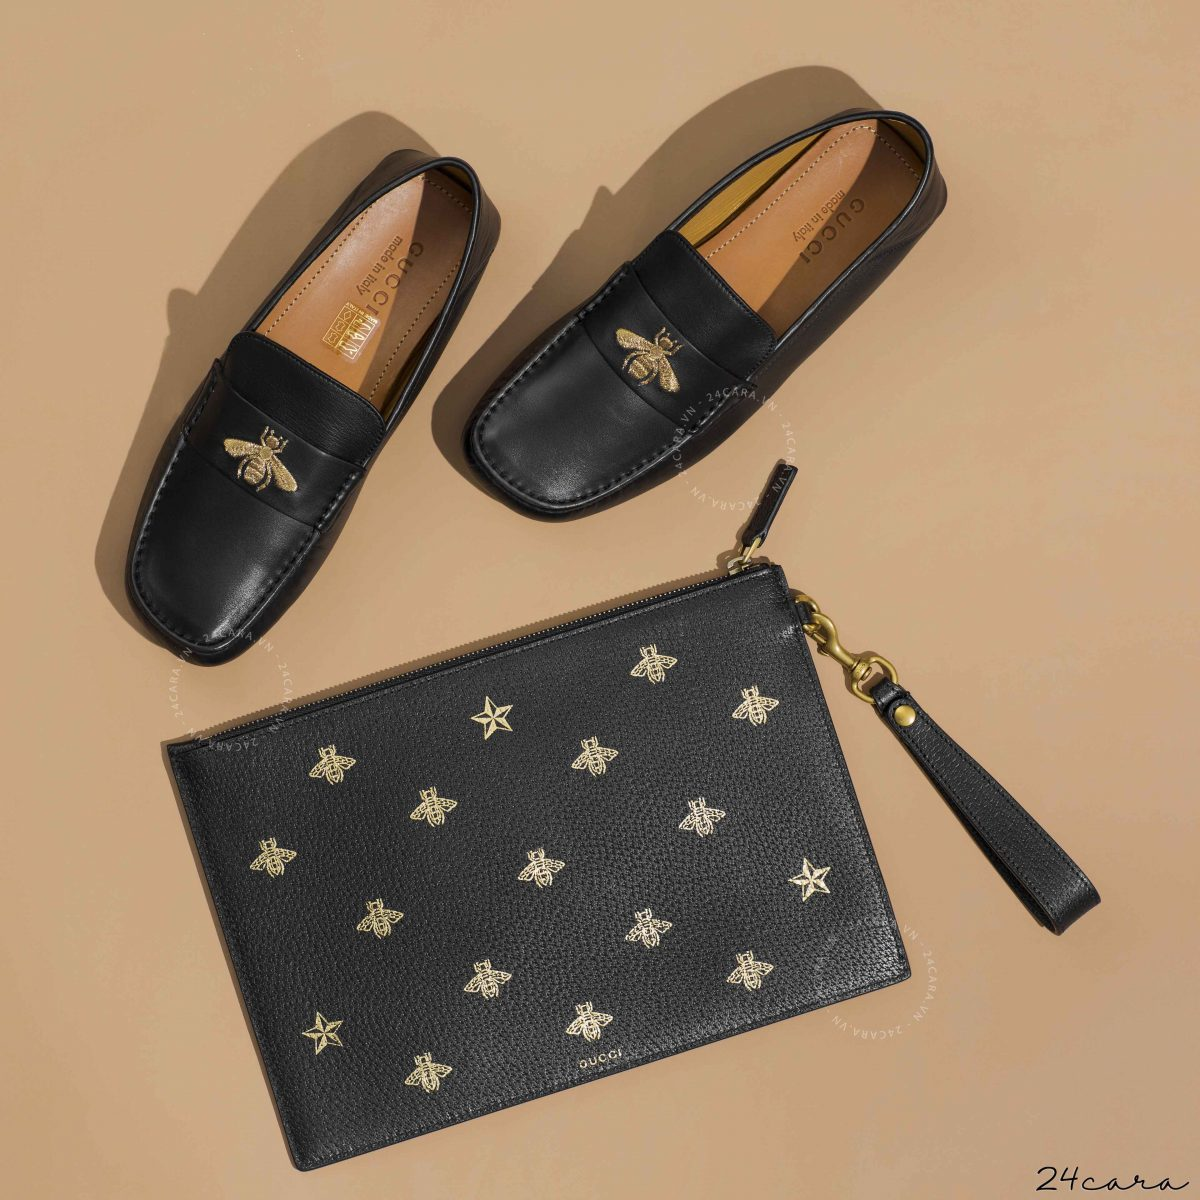 GUCCI BEE STAR LEATHER CLUTCH